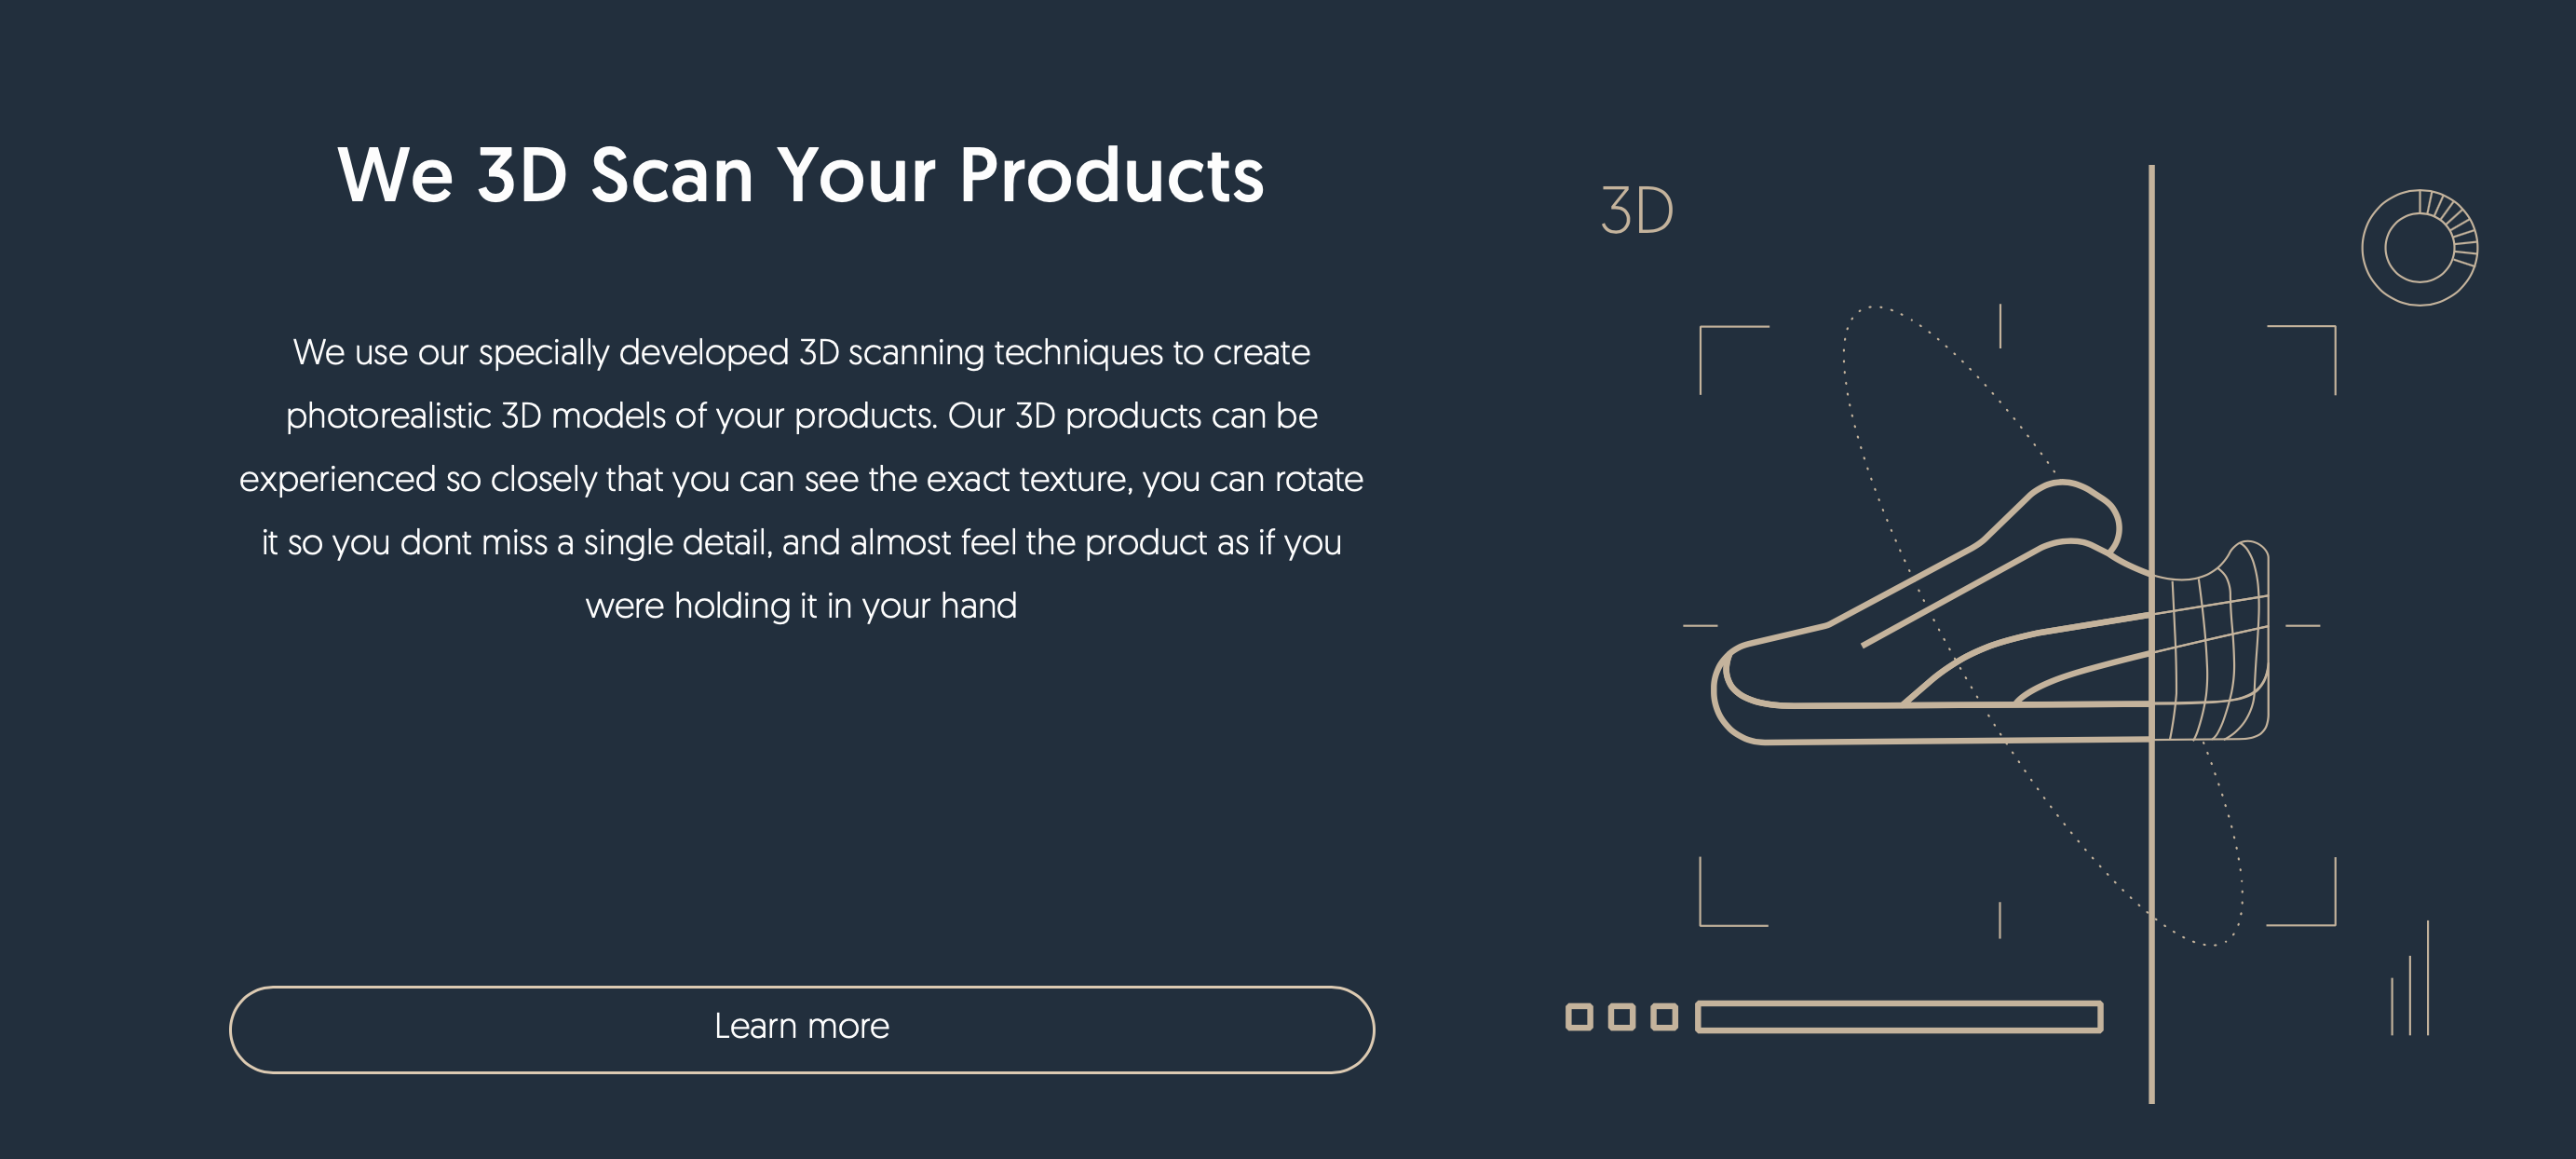 Baetes_3D Scan Your Products